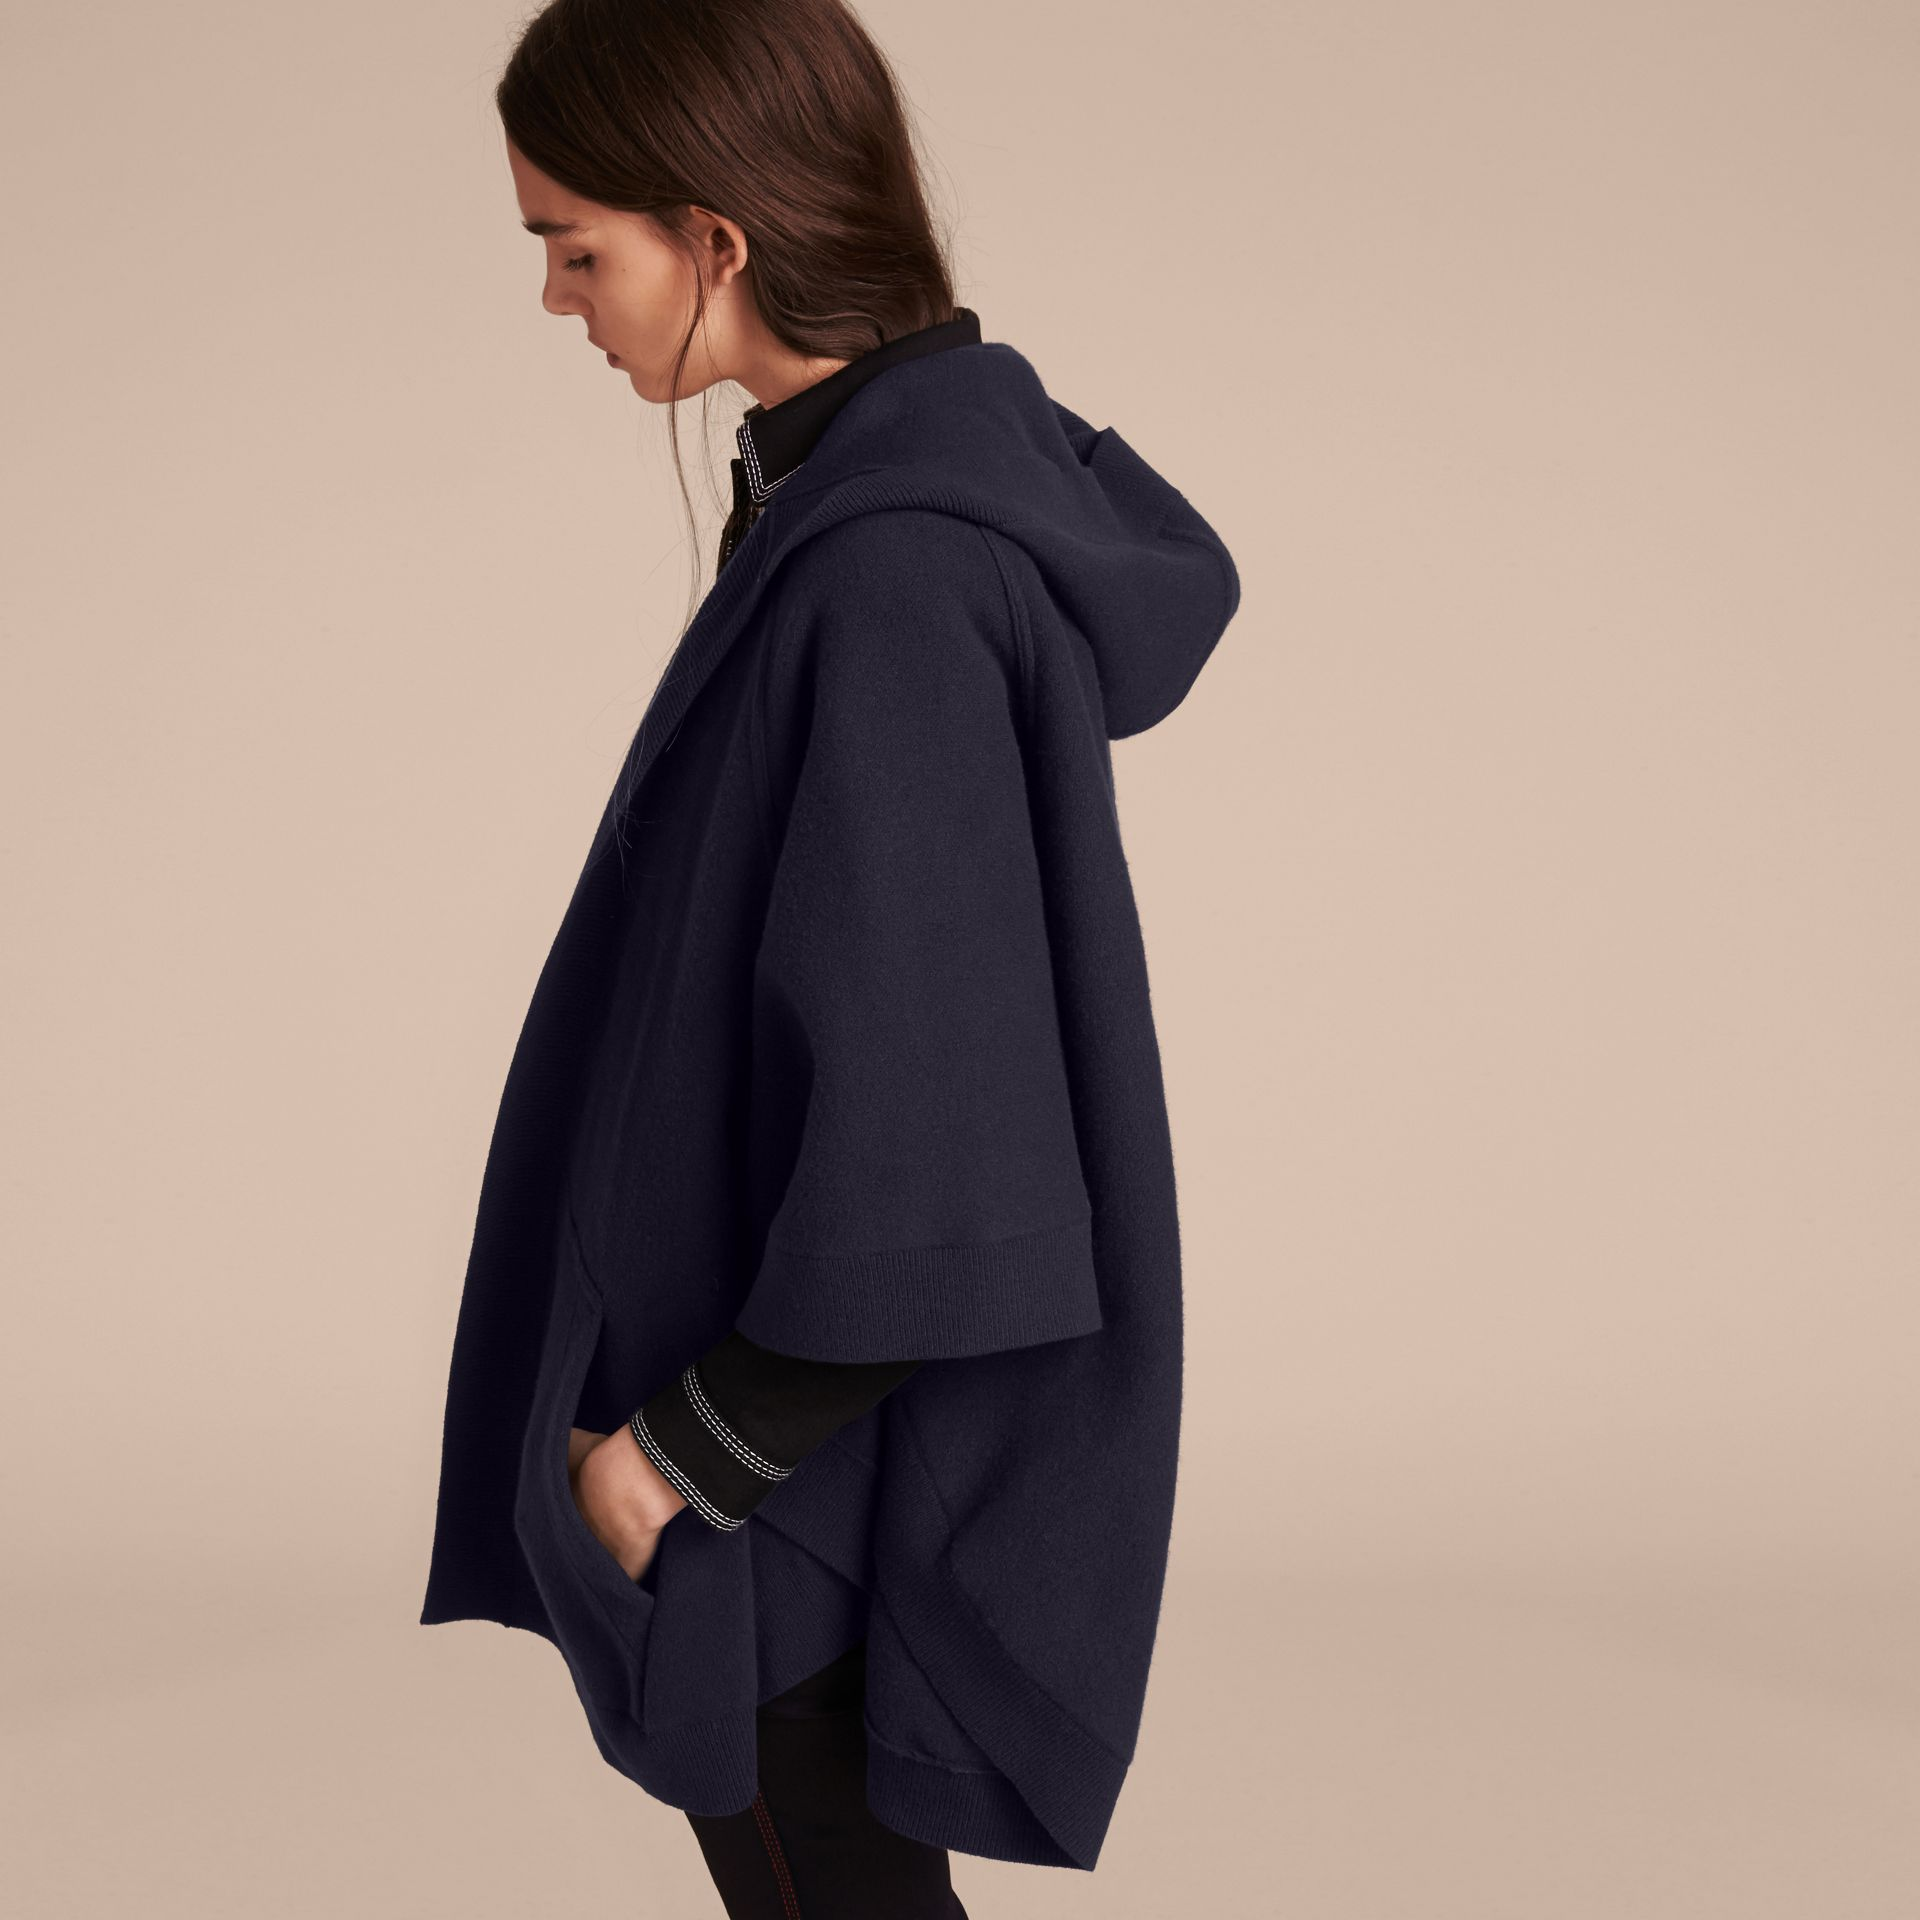 Wool Cashmere Blend Hooded Poncho in Navy/black - Women | Burberry - gallery image 3